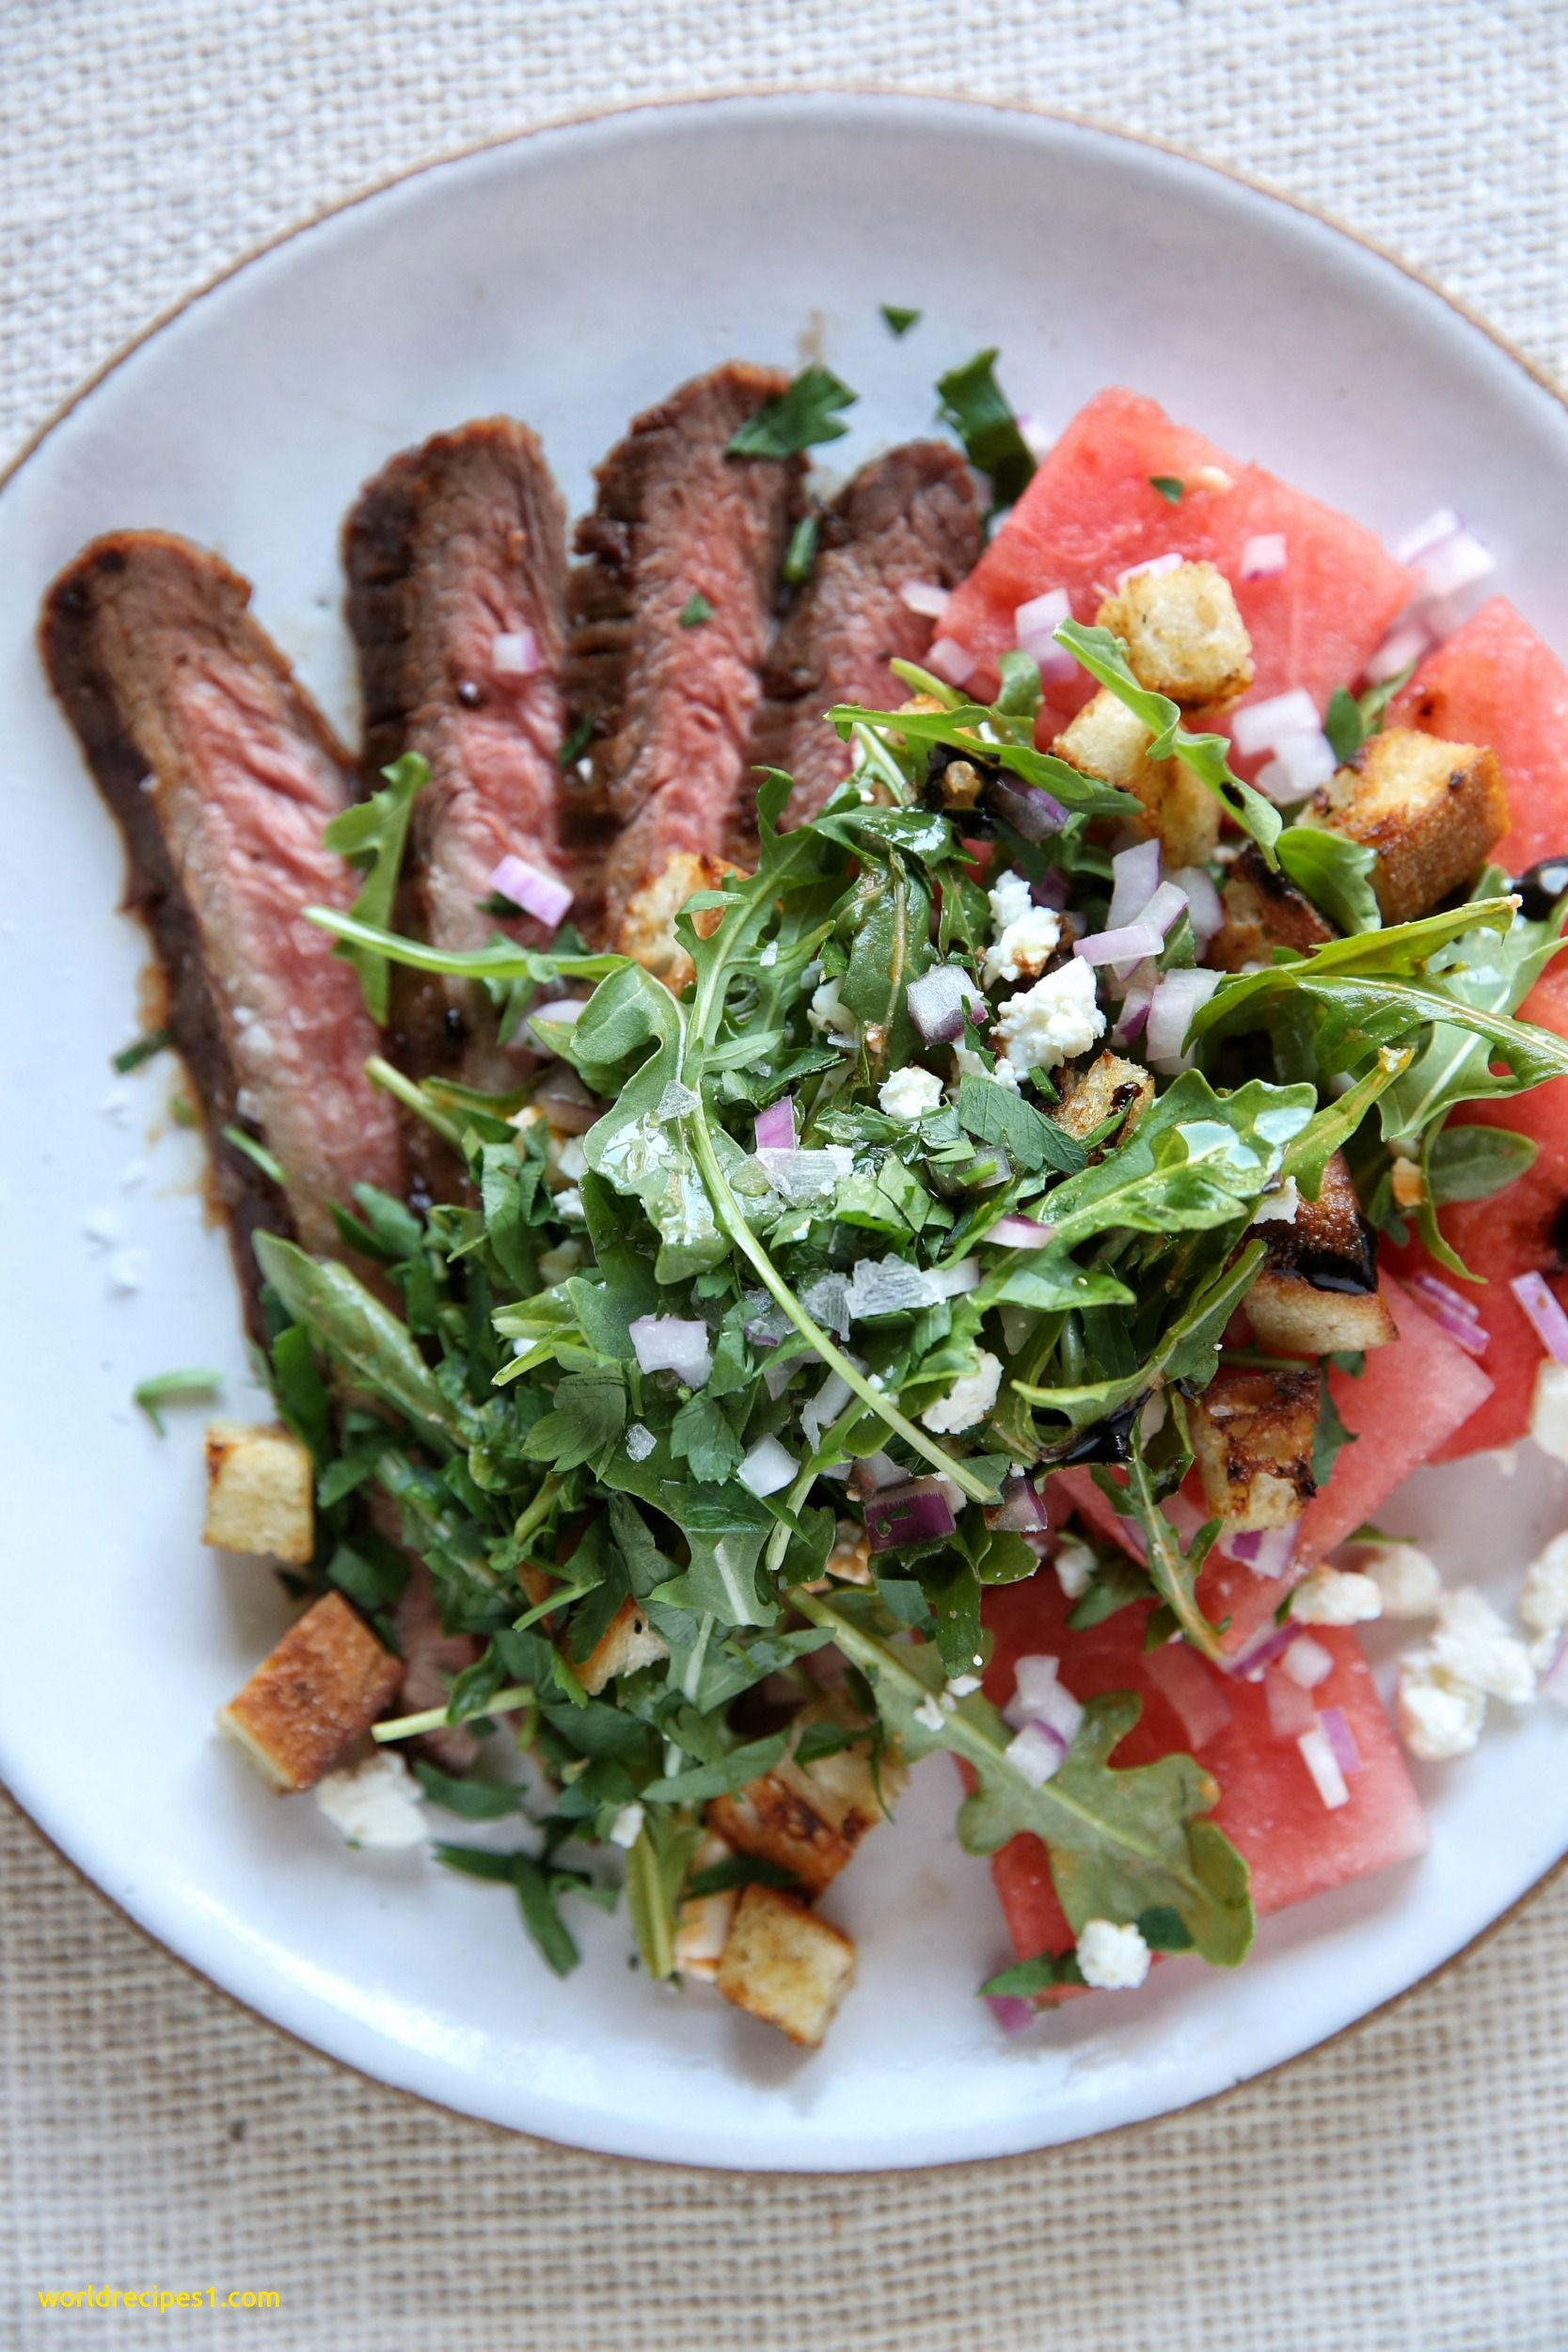 Beef Recipes For Dinner Healthy Watermelon Recipes Beef Recipes Summer Recipes Dinner